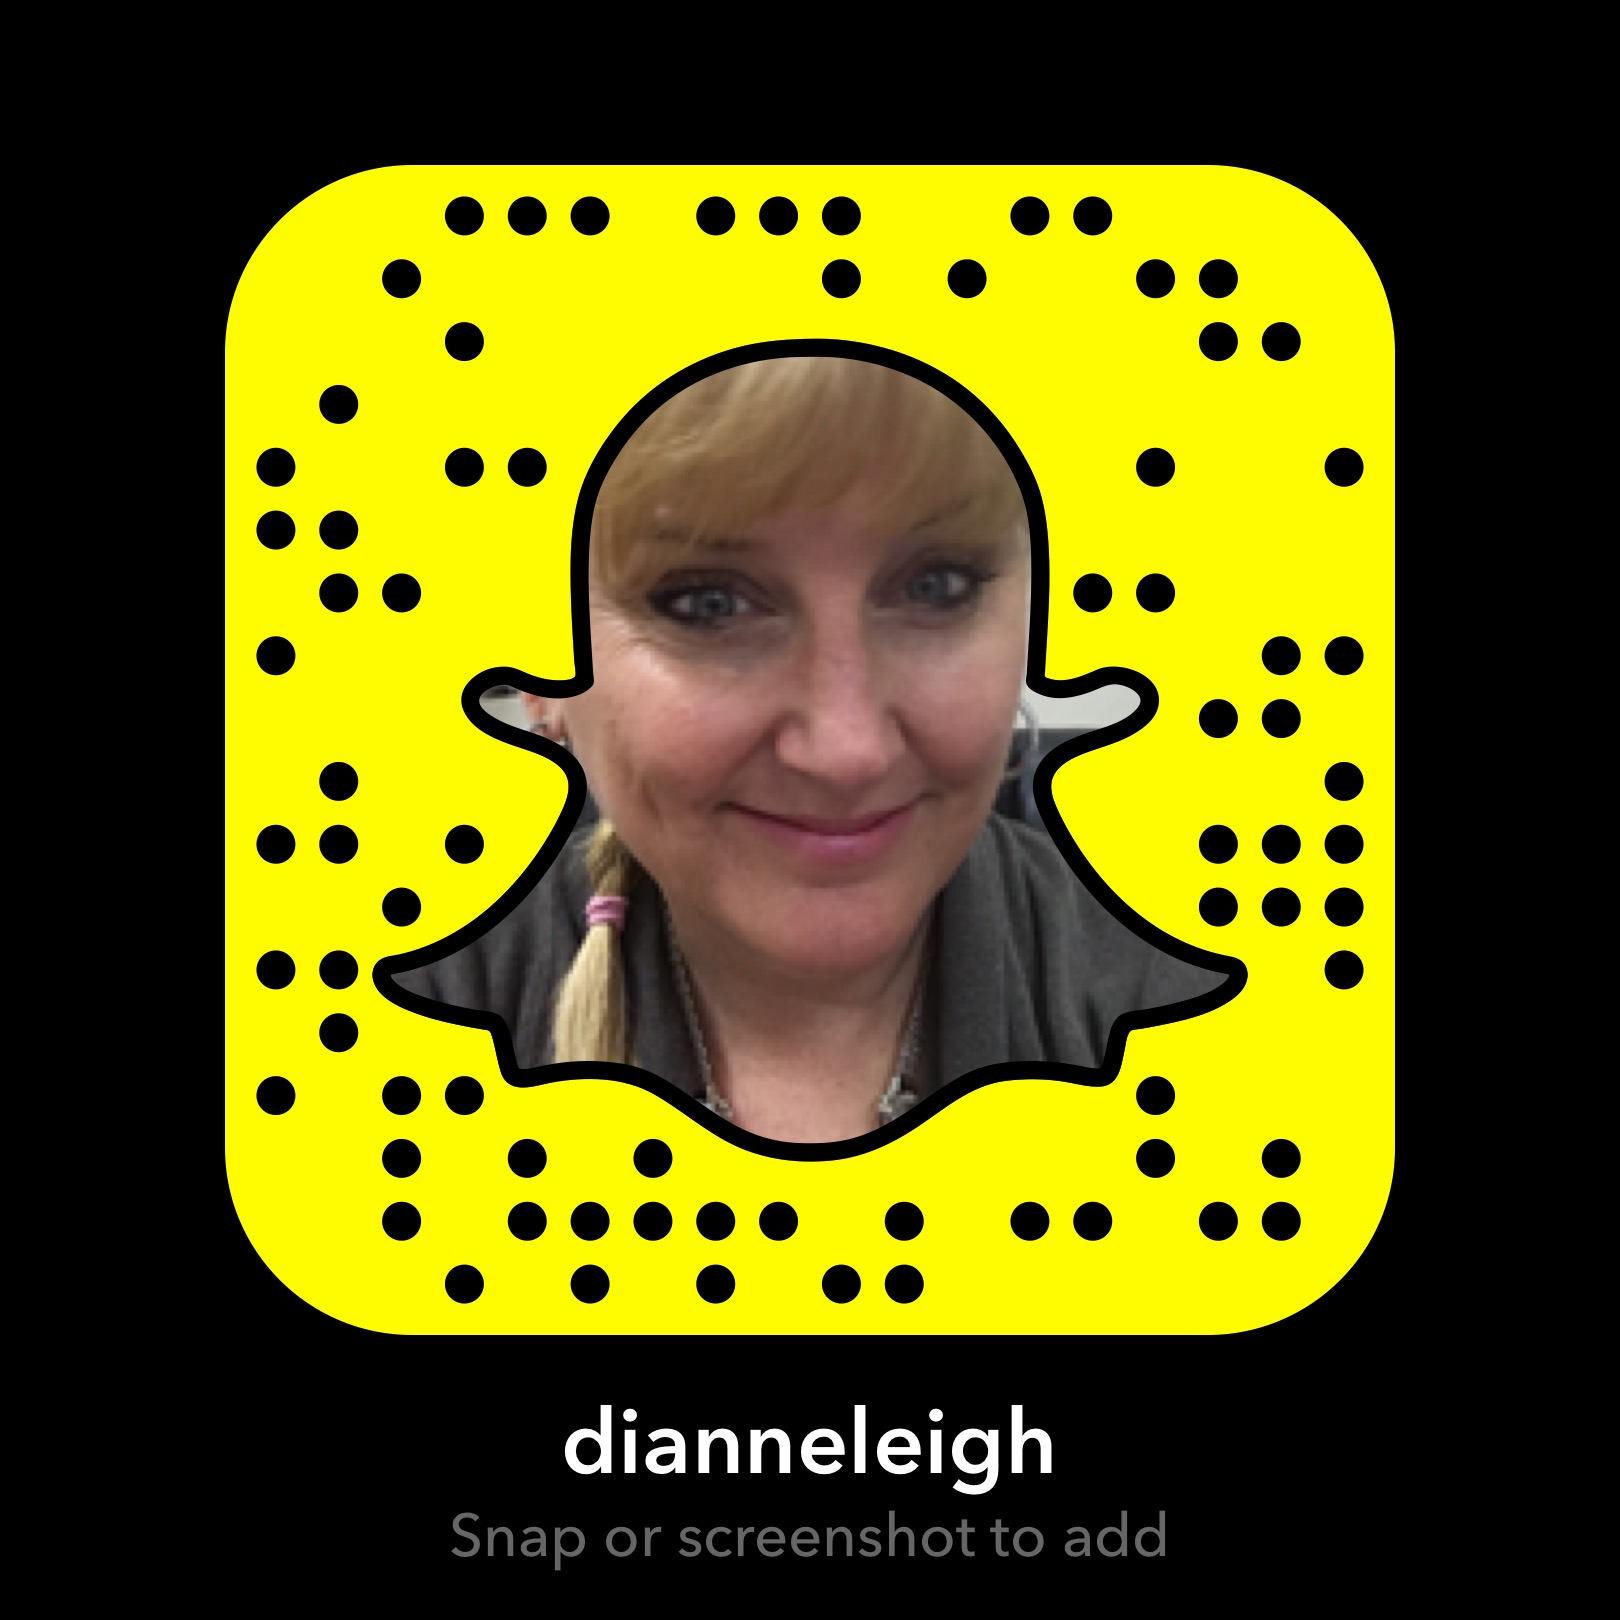 http://www.dianneleigh.com/wp-content/uploads/2016/07/2016-07-27.jpg on Snapchat